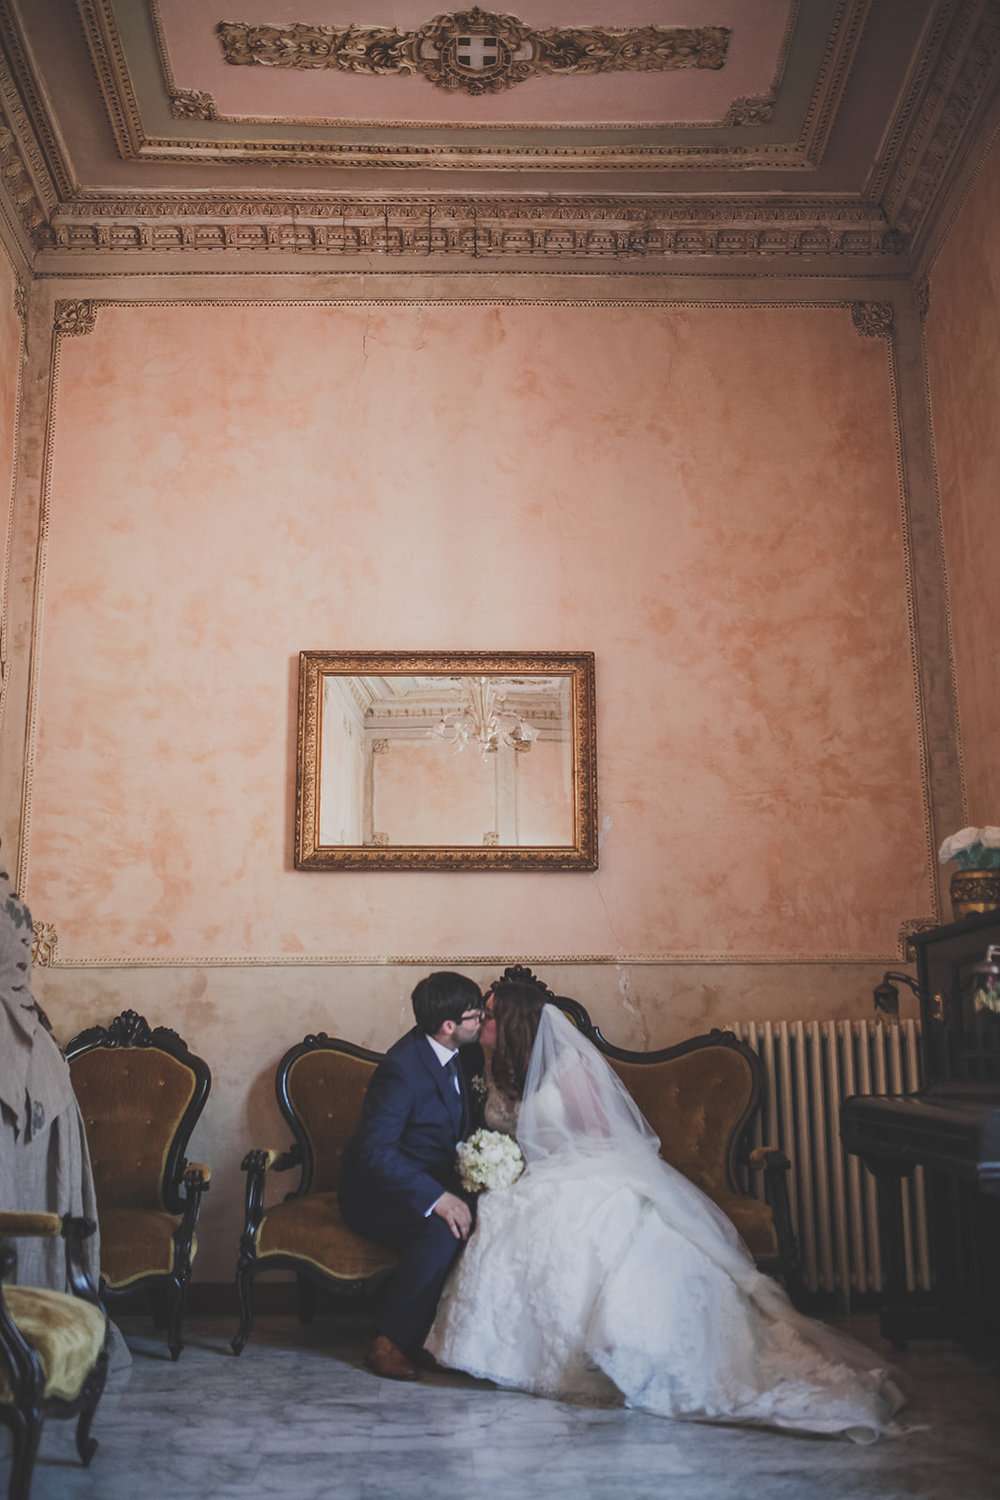 a bride and groom sit on a sofa and kiss in a grand room. destination creative wedding photography italy. stop motion wedding films uk